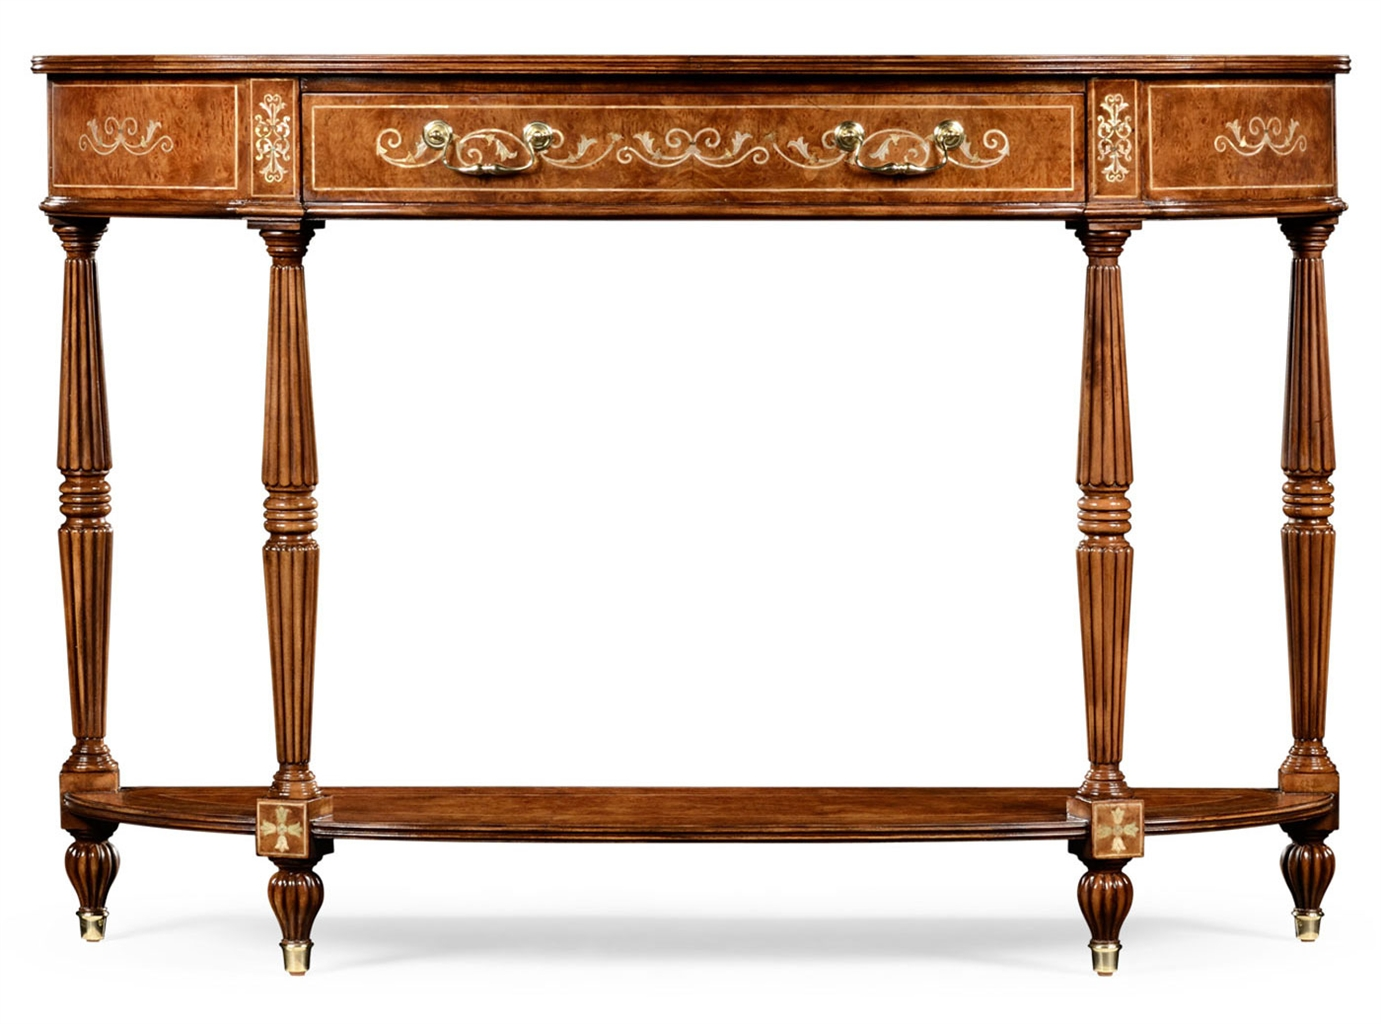 New 28 high sofa table high end demilune console for Sofa table 36 high